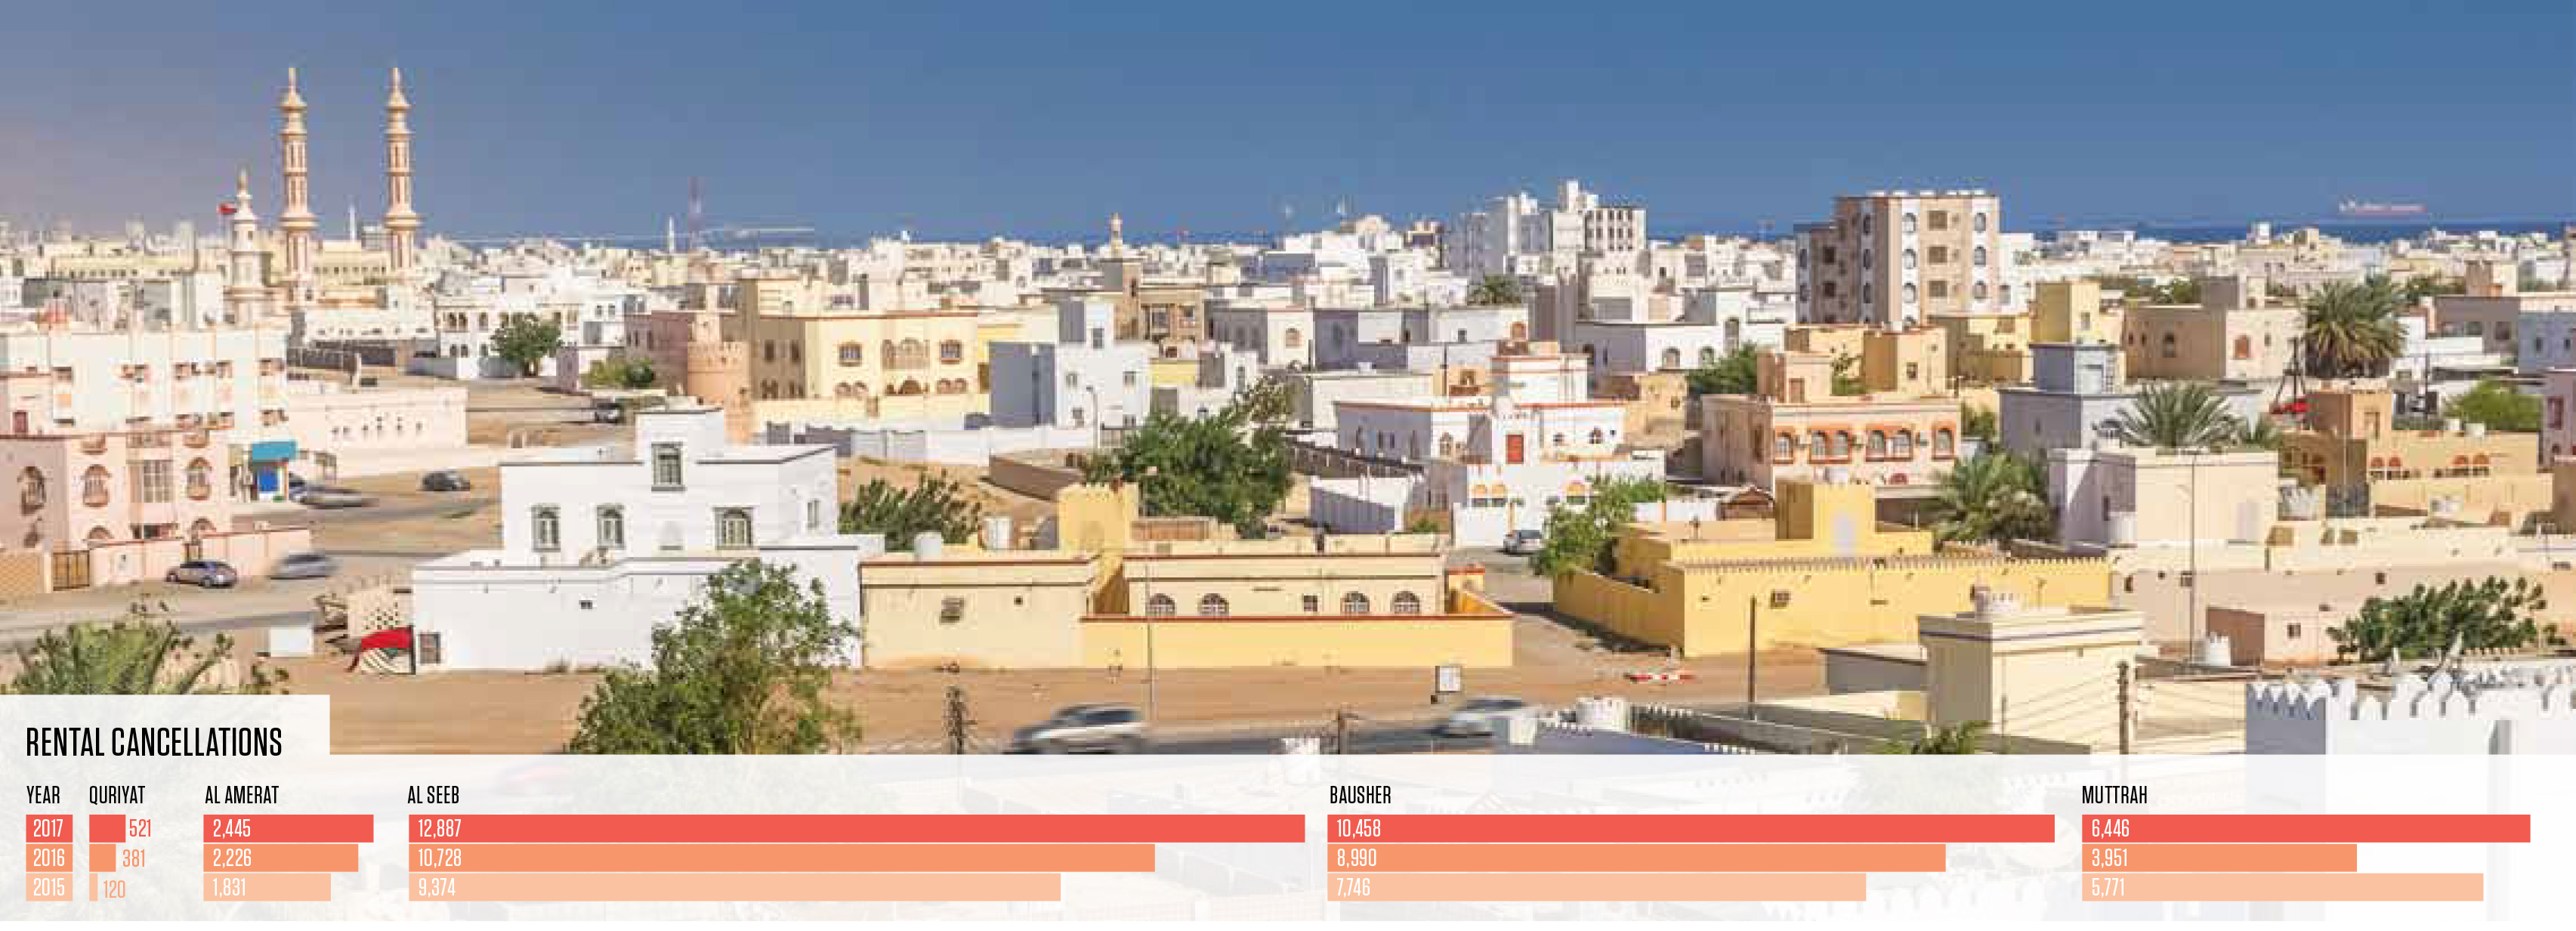 Rents drop in Oman as more rental contracts ripped up